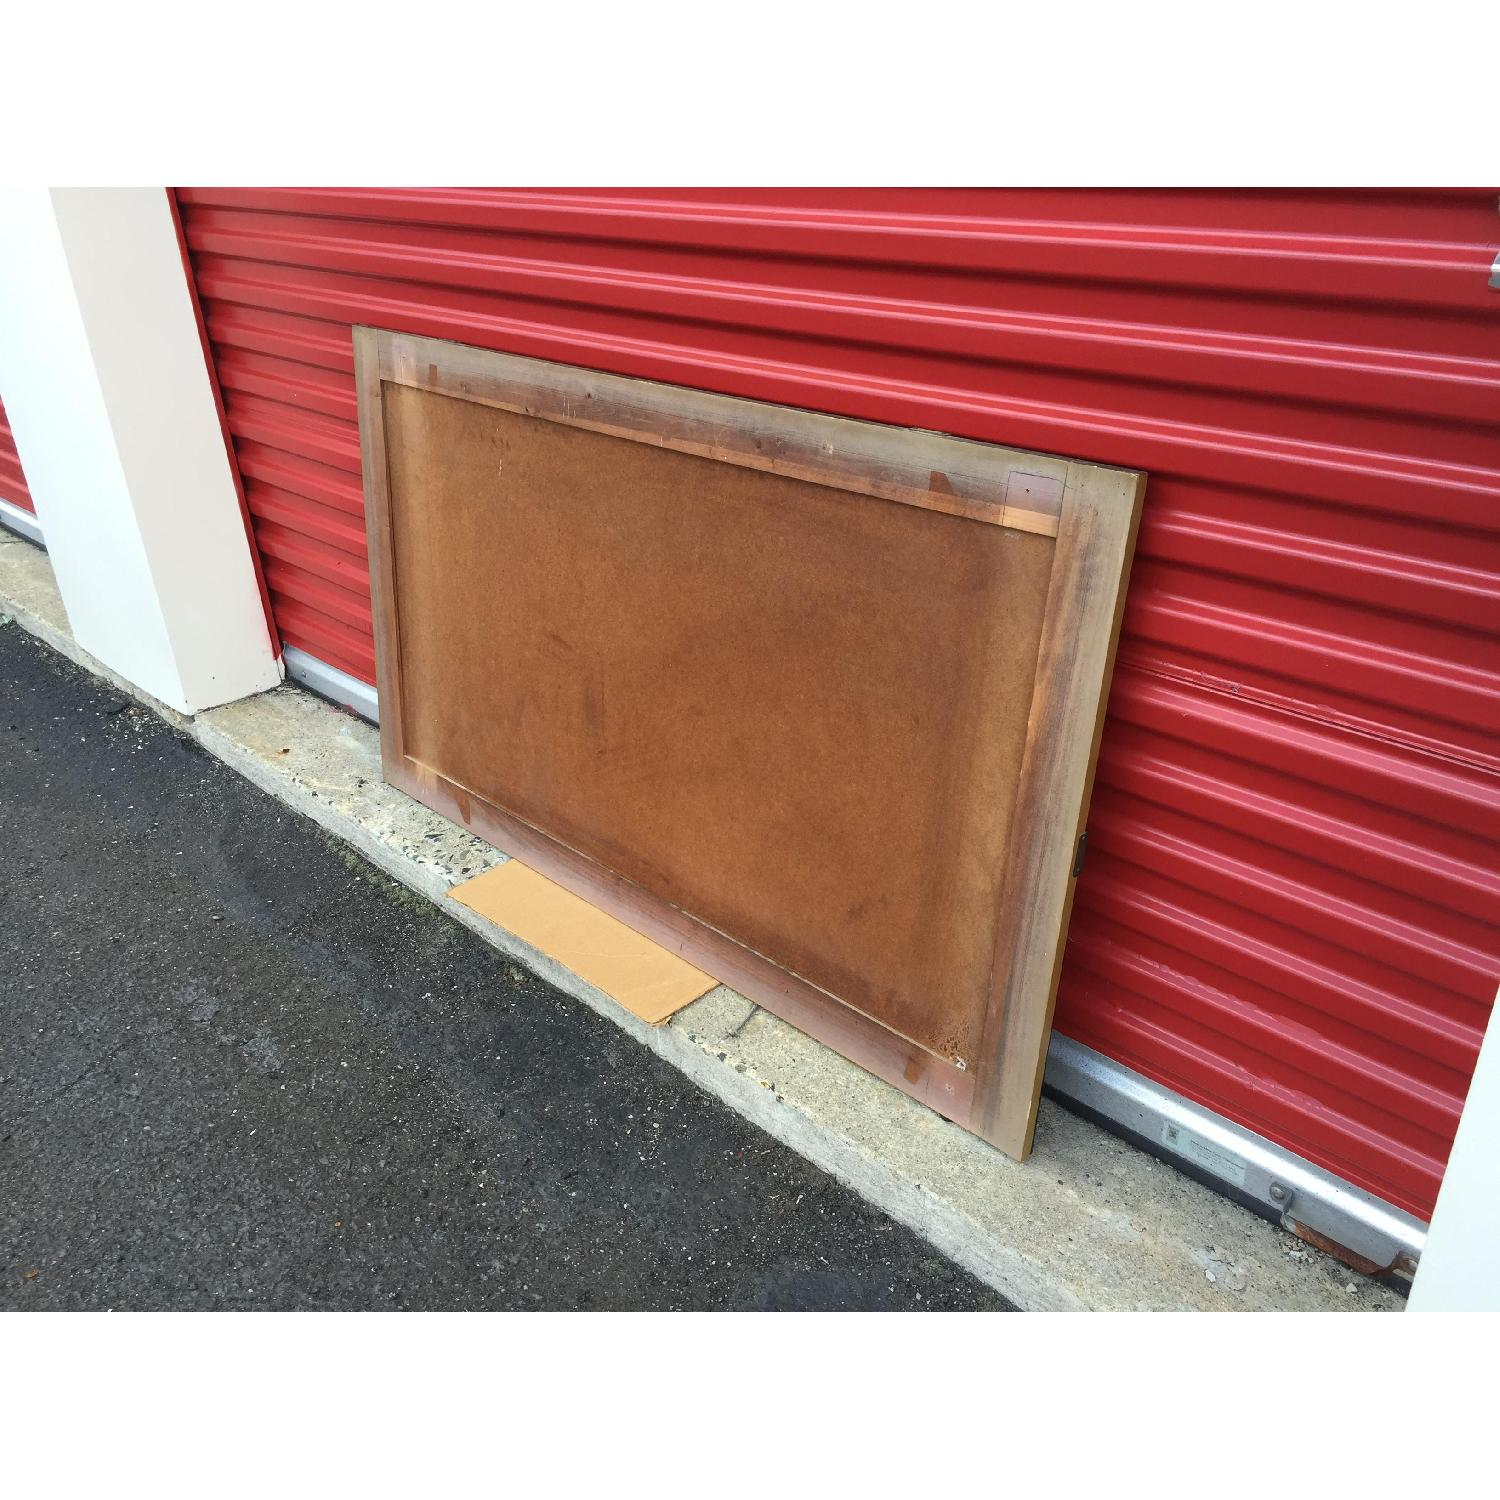 Mid Century Modern Wall Mirror with Beveled Edge and Brass Accents - image-7